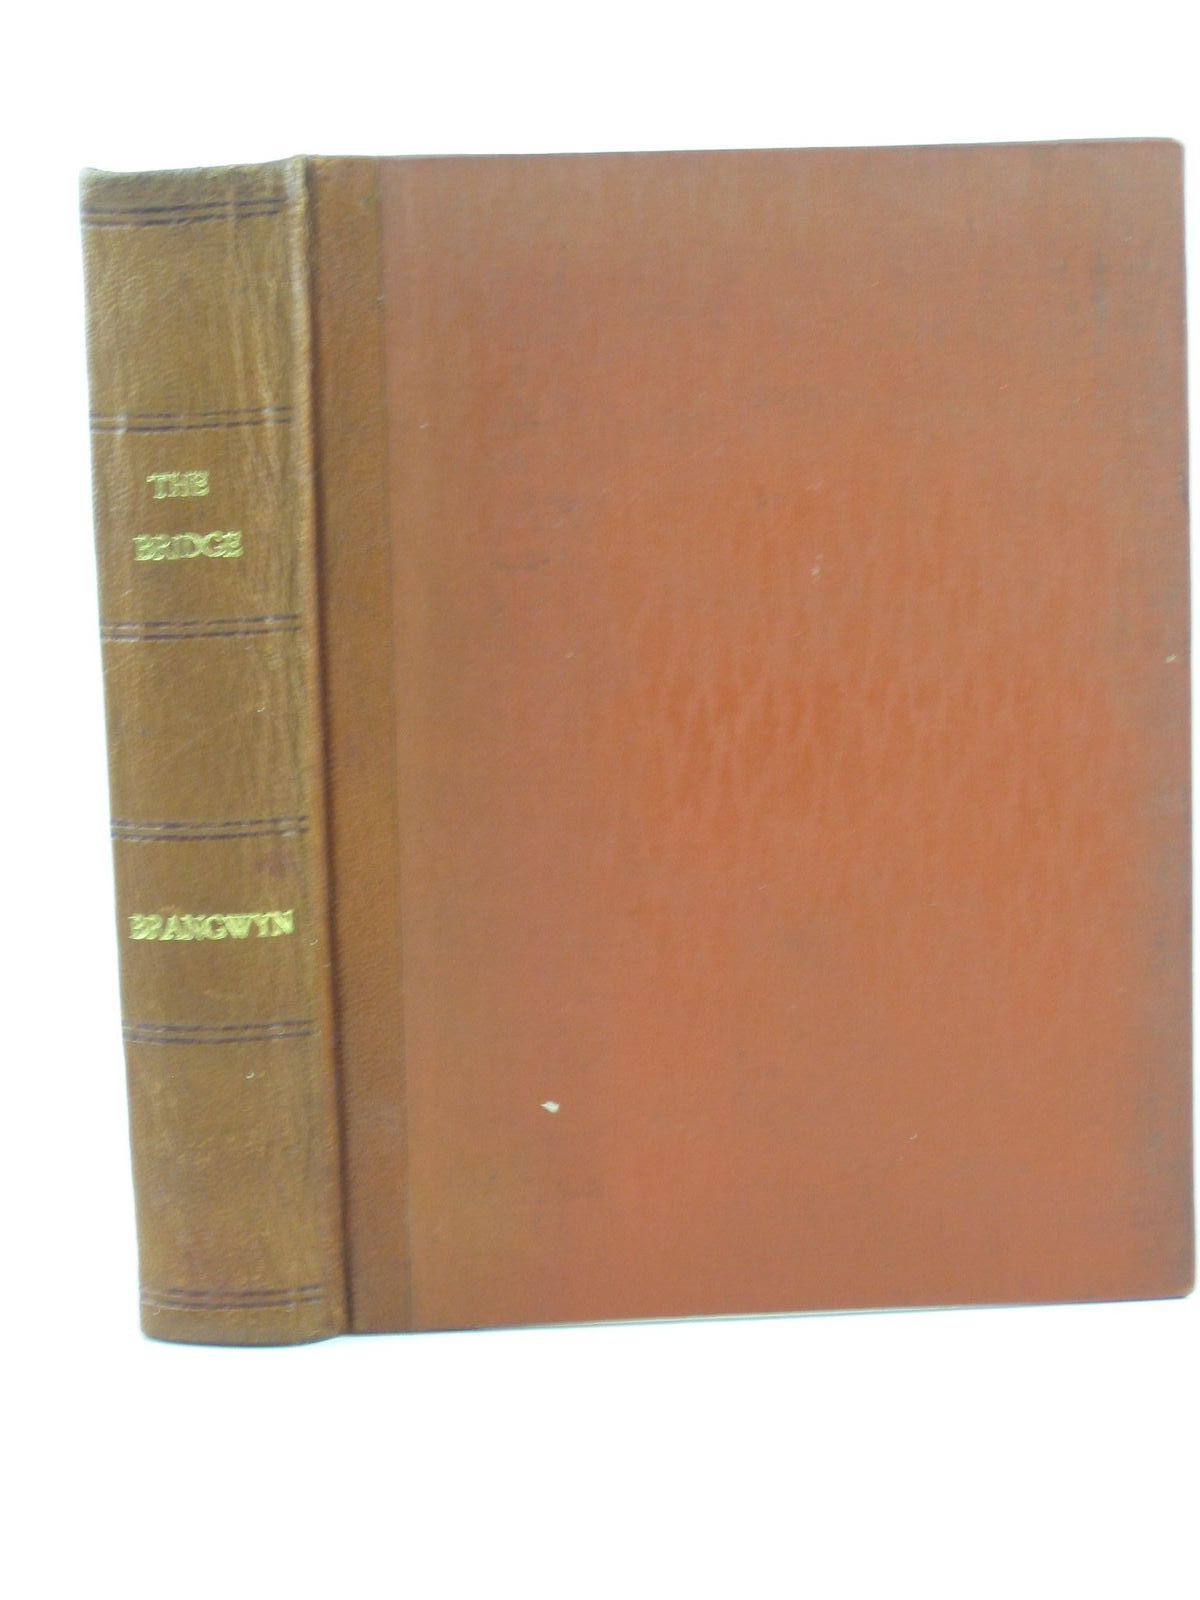 Photo of THE BRIDGE written by Barman, Christian illustrated by Brangwyn, Frank published by John Lane The Bodley Head Limited (STOCK CODE: 1311484)  for sale by Stella & Rose's Books